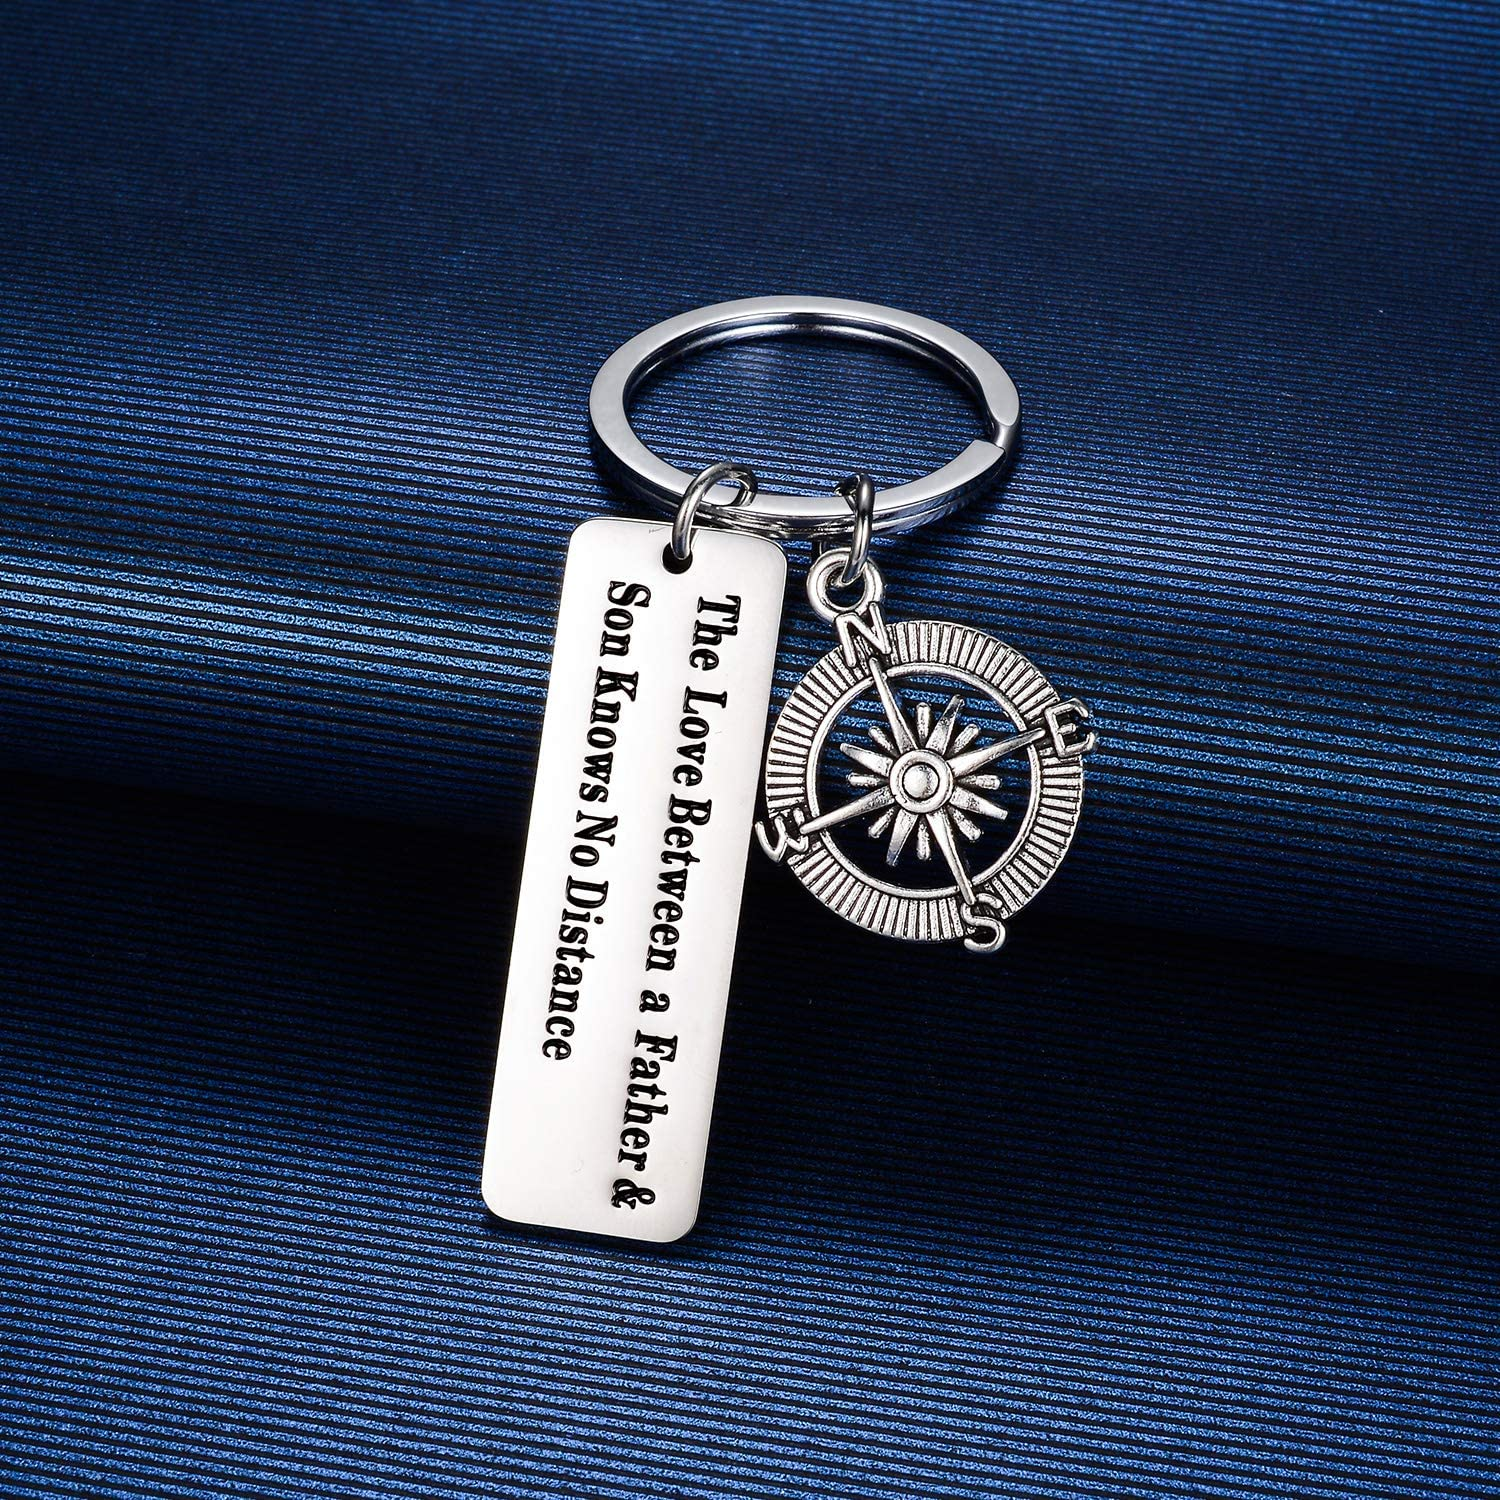 MADHAHEFU Father Daughter Long Distance Keychain Gifts Key Ring Keychain for Birthday Christmas from Daughter Son